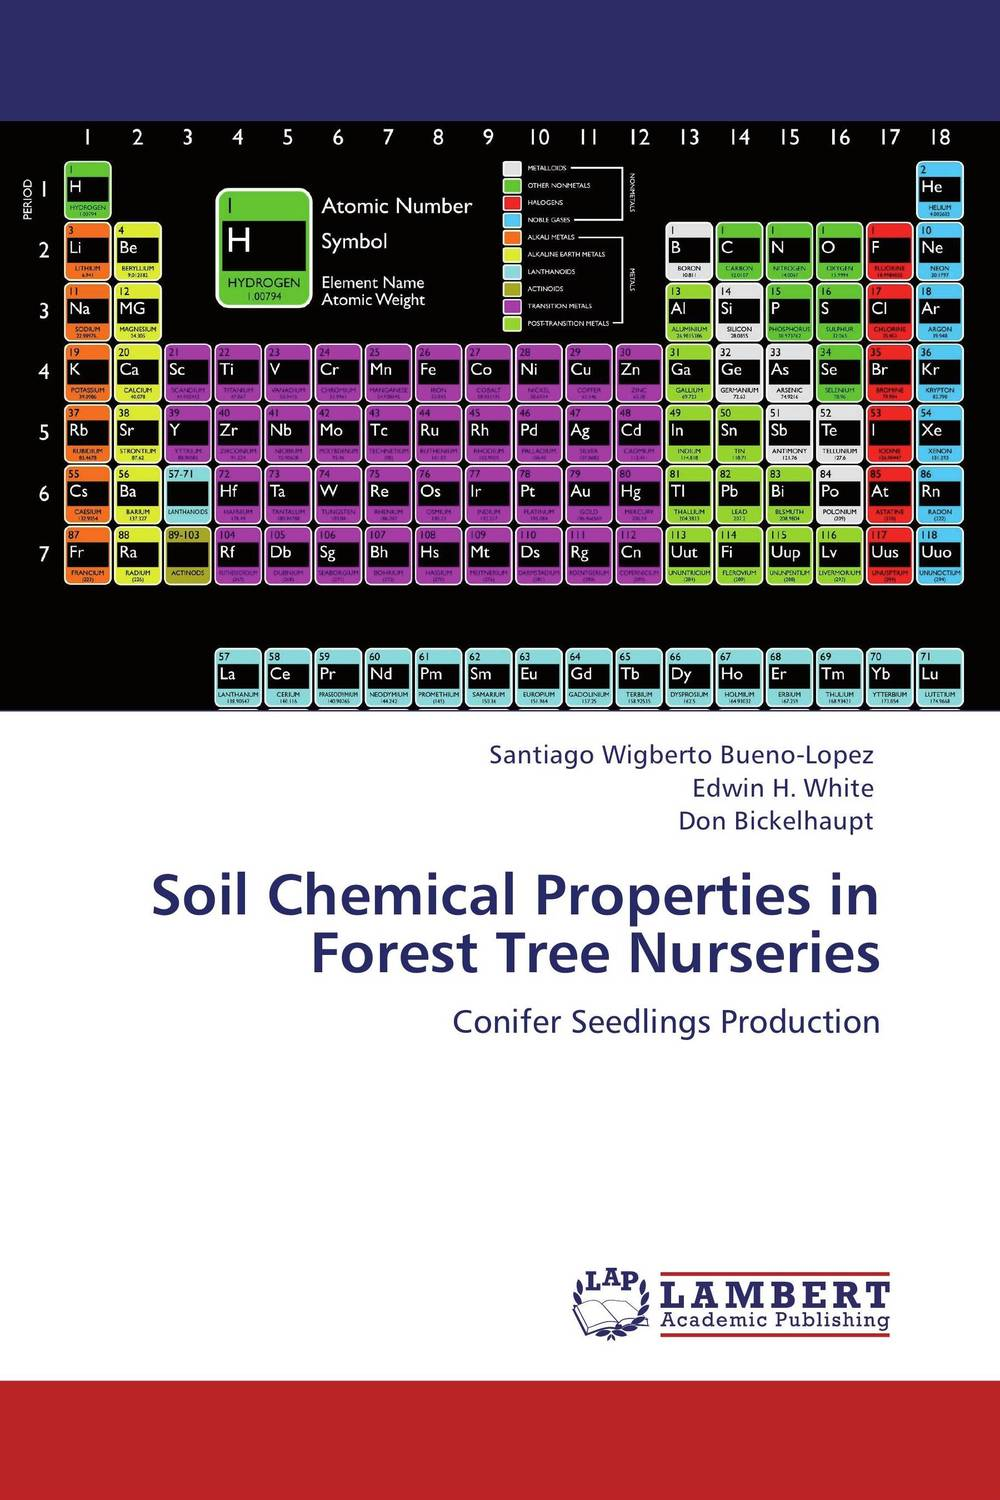 Soil Chemical Properties in Forest Tree Nurseries gnanasekar s and chandrasekhar c n carbon sequestration in multipurpose tree species at seedling stage